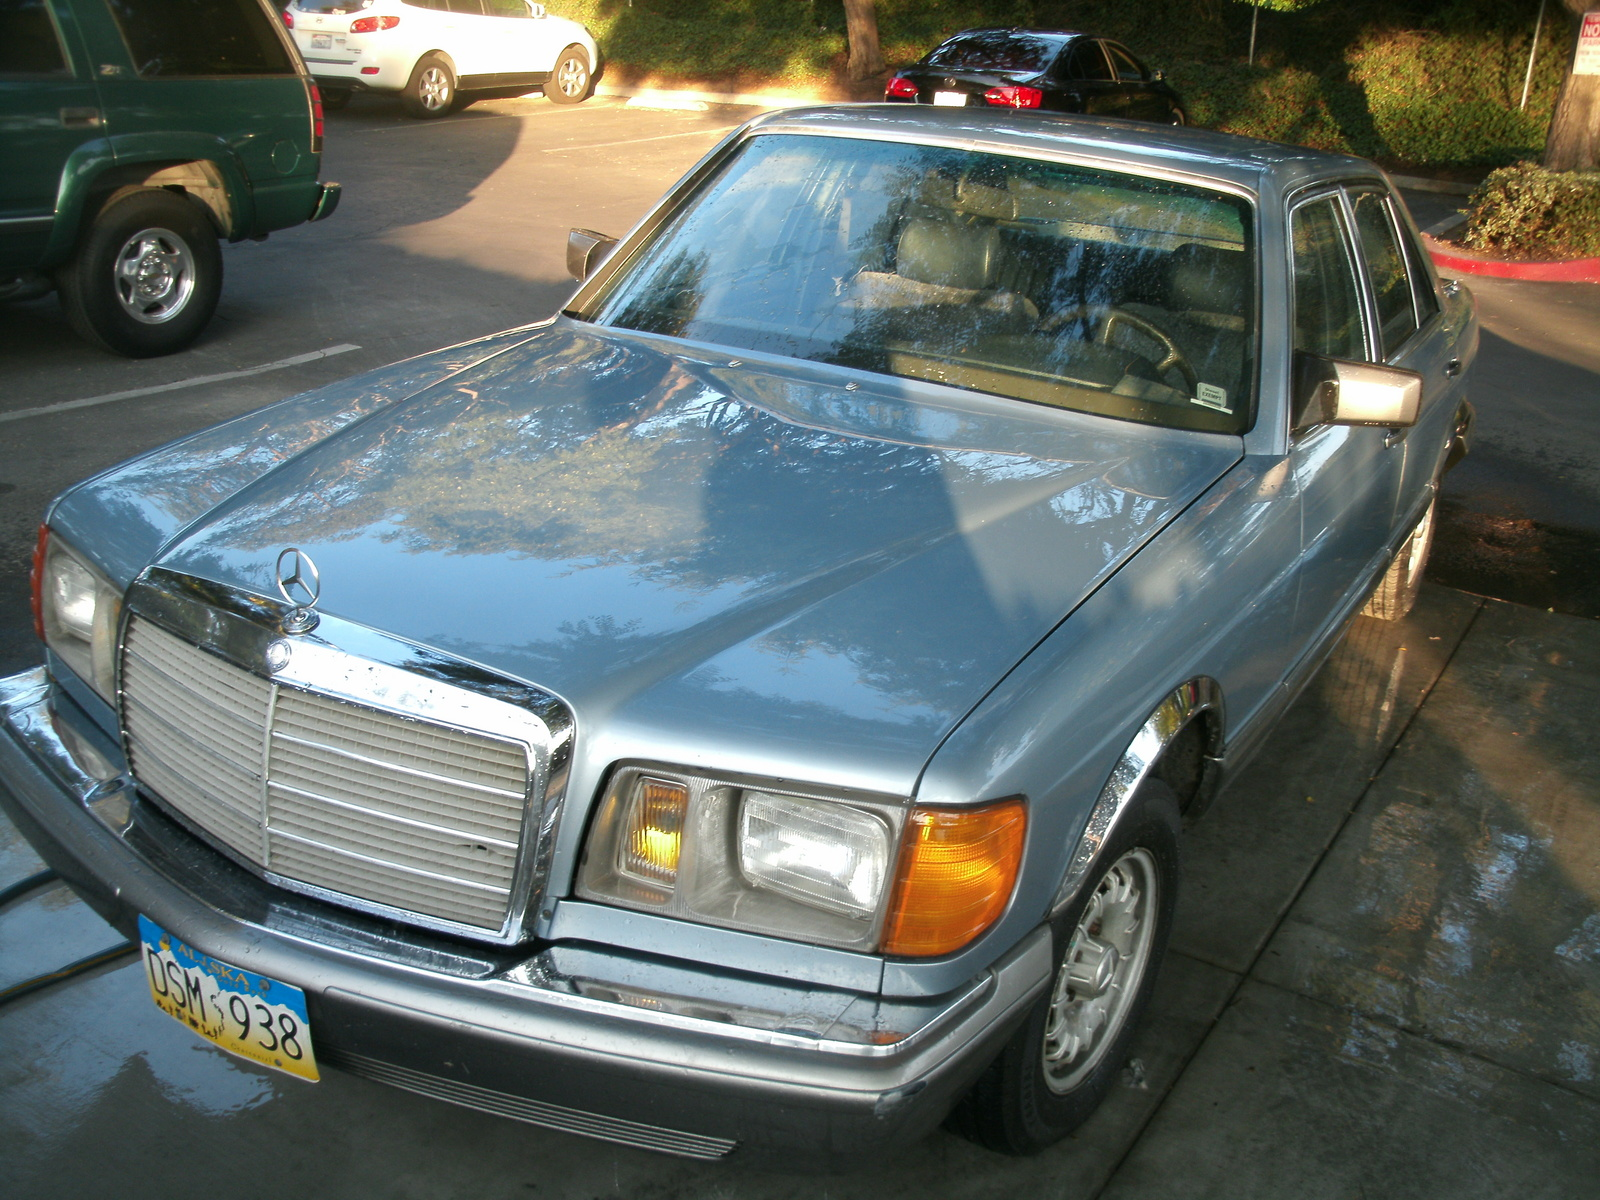 Picture of 1981 Mercedes-Benz 300-Class 300SD Turbodiesel Sedan